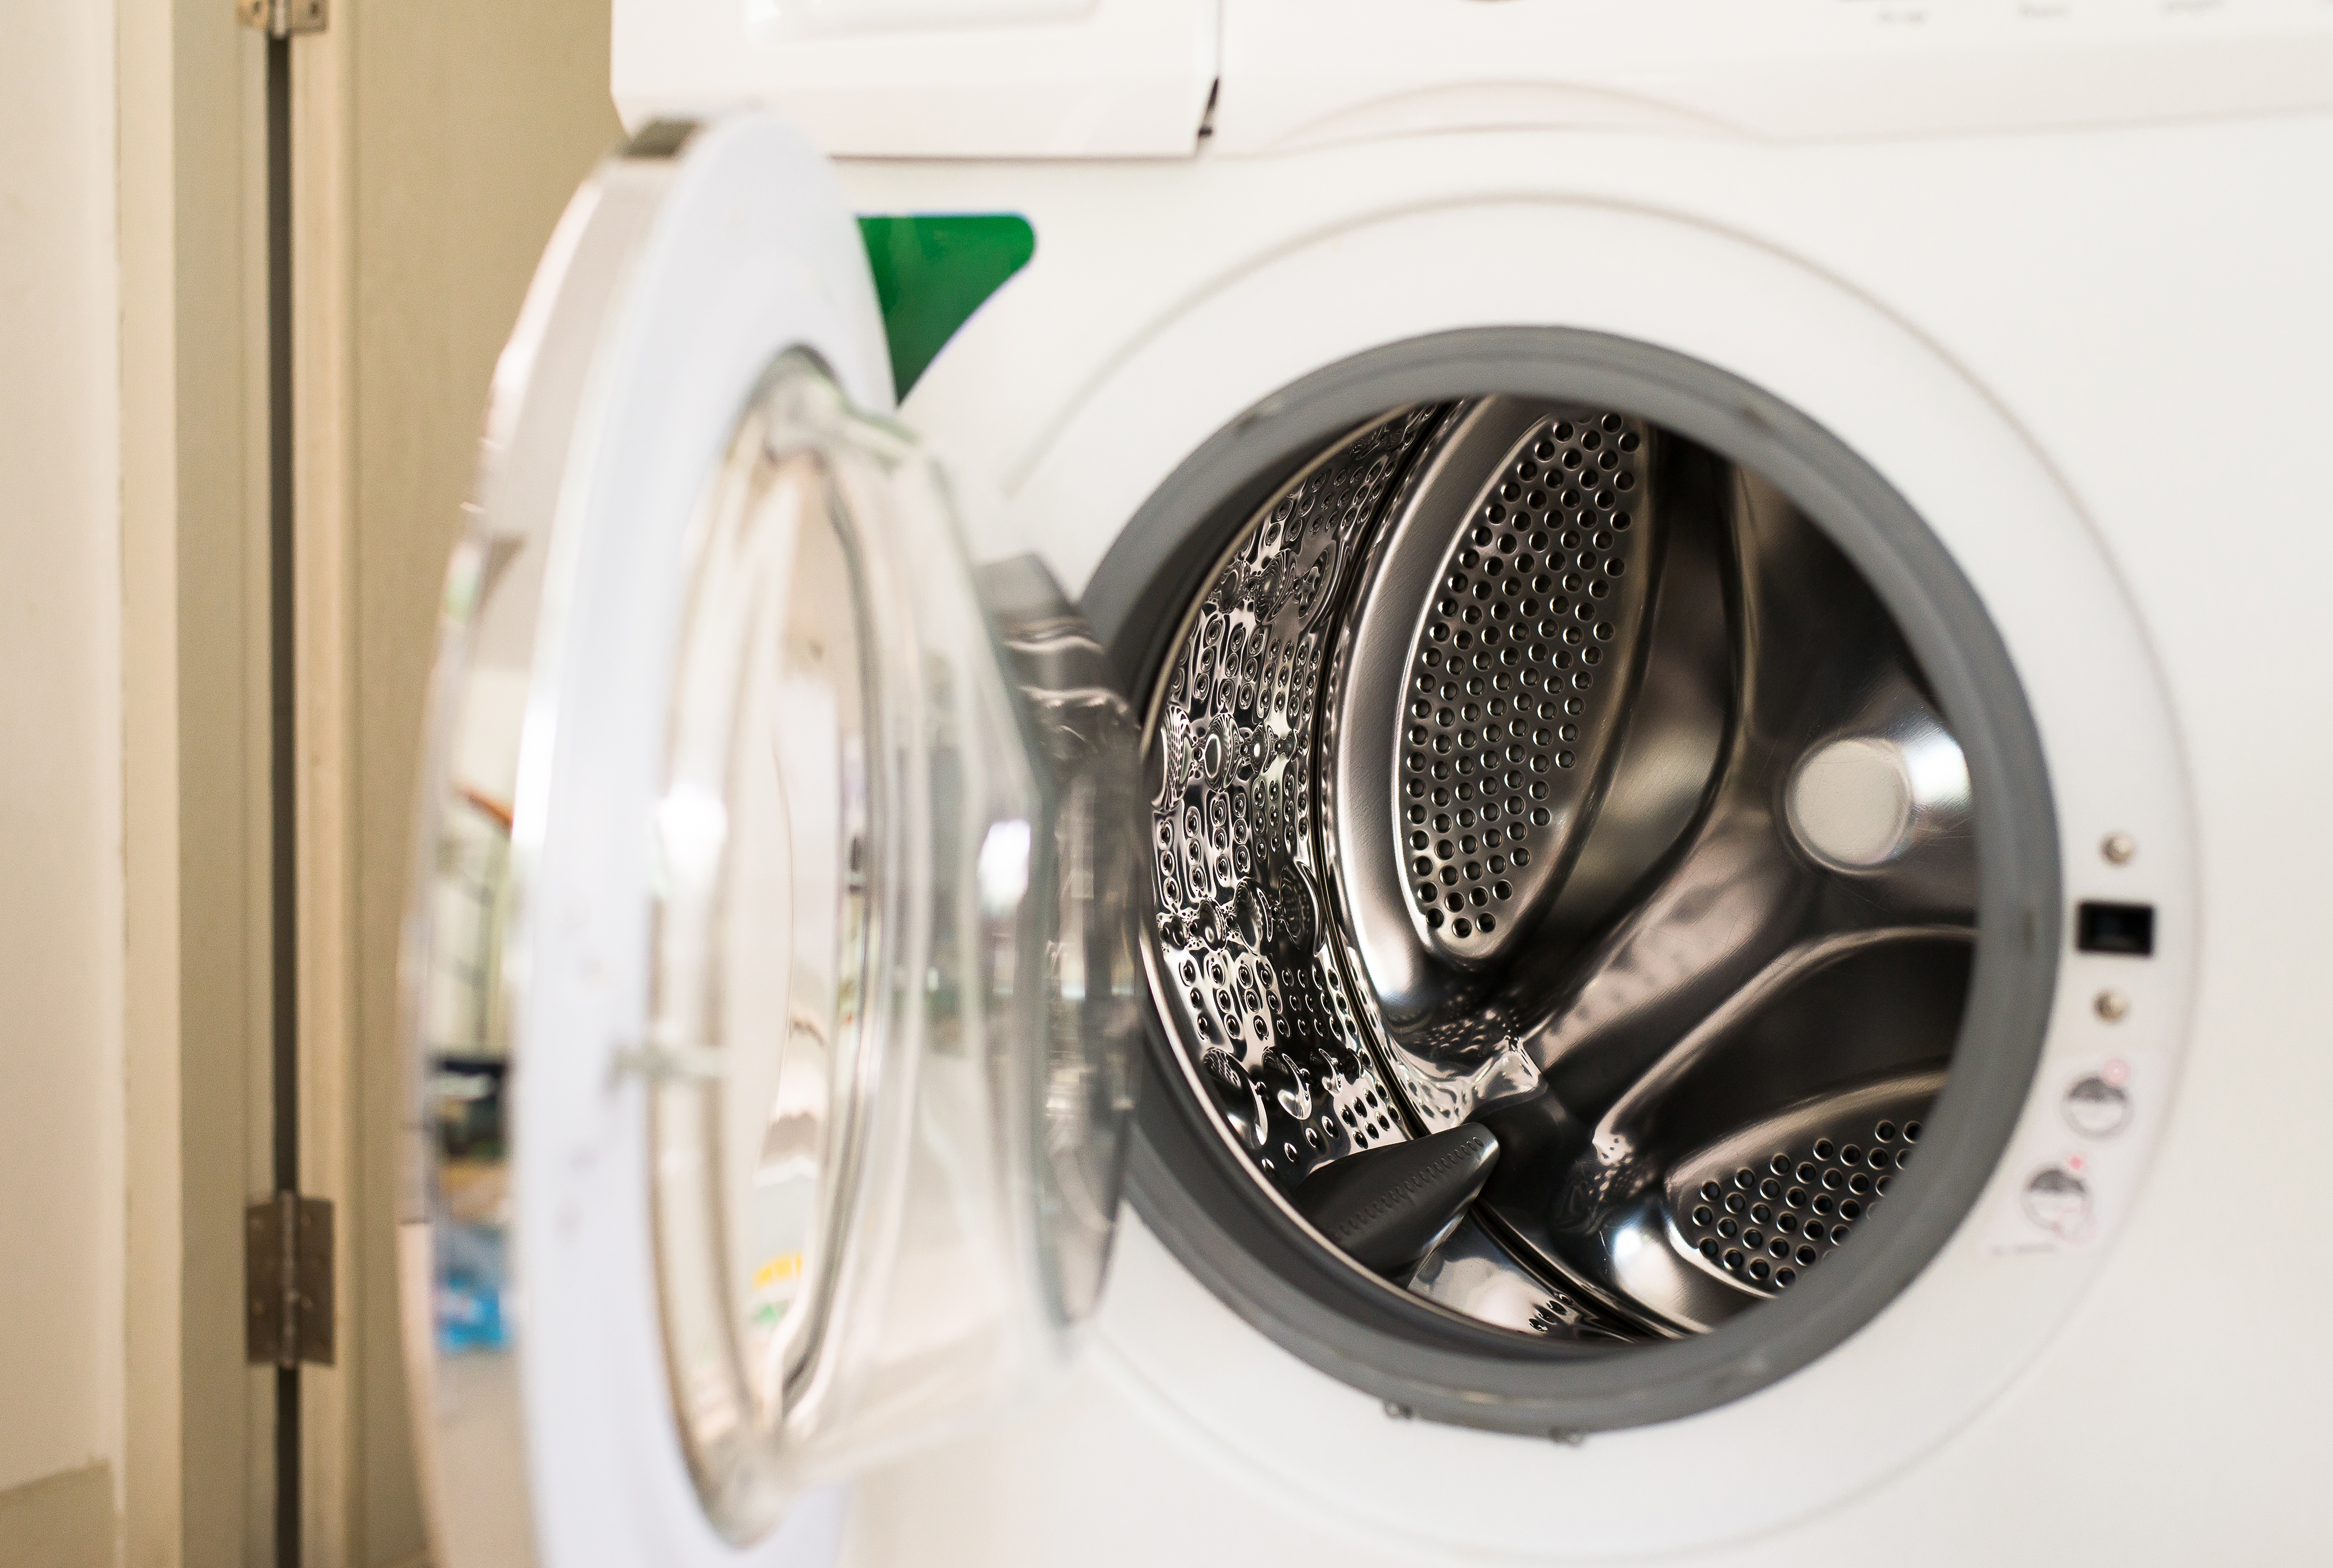 How To Make Your Clothes Smell Good In The Dryer how to remove mold smells from a dryer | home guides | sf gate